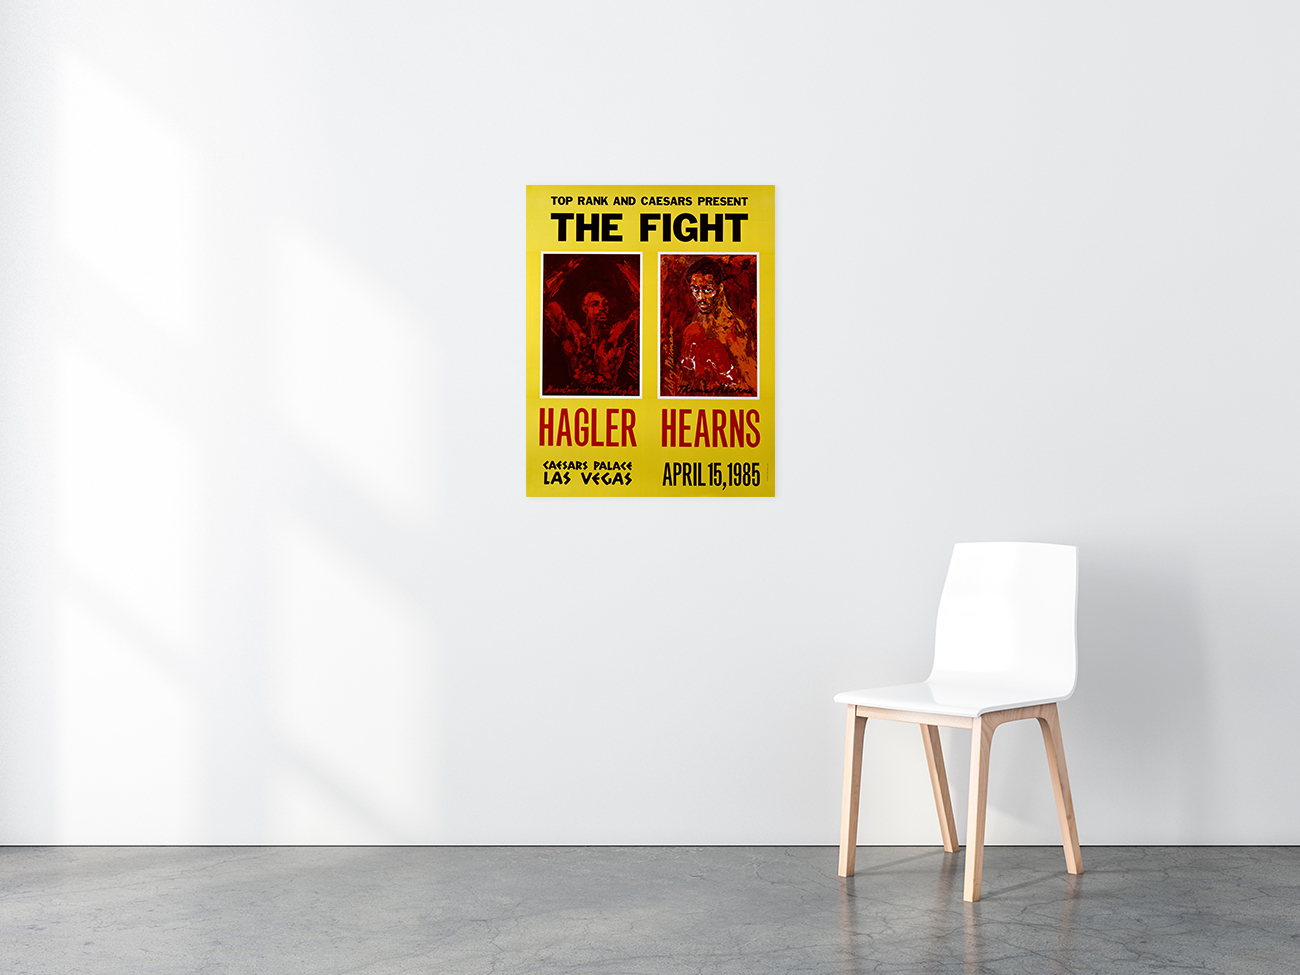 Hagler vs. Hearns 1985 Boxing poster in situ